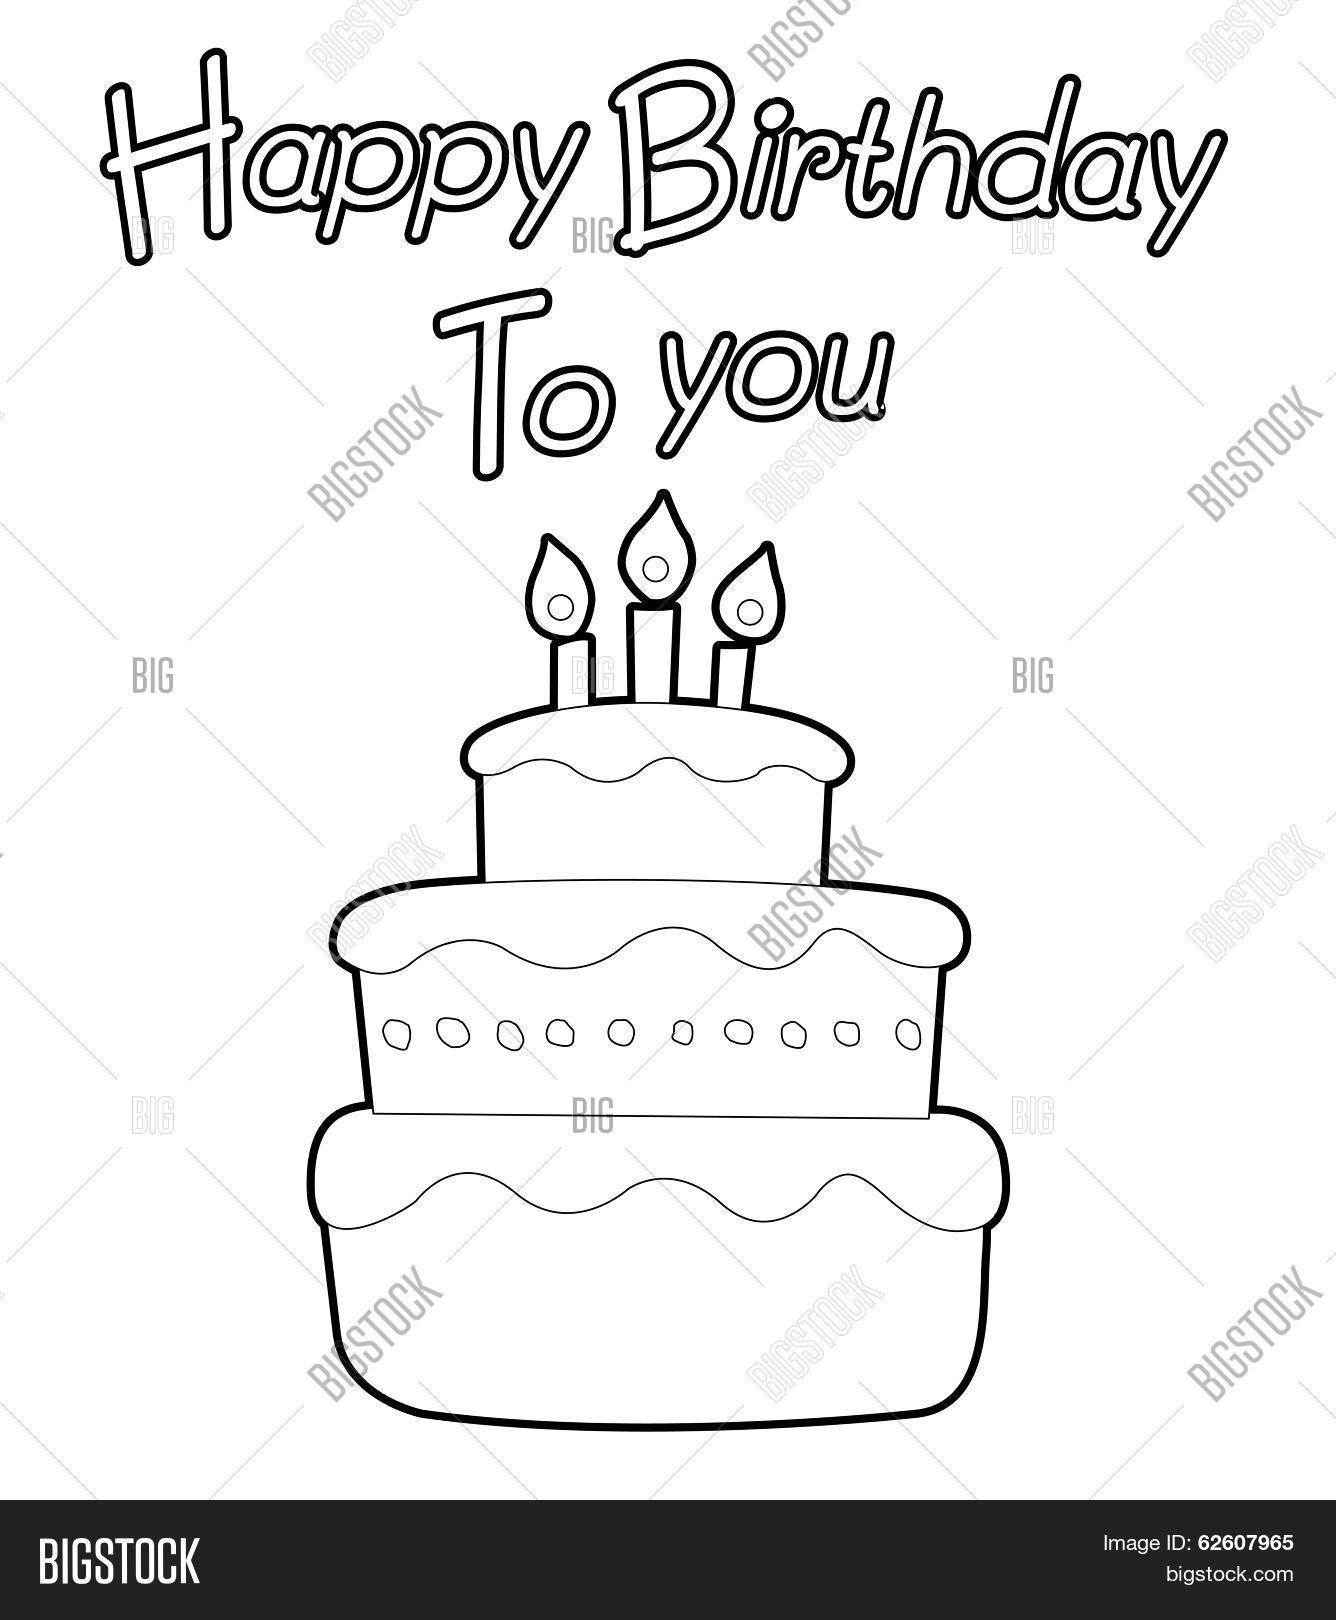 Cake Coloring Book Vector & Photo (Free Trial) | Bigstock